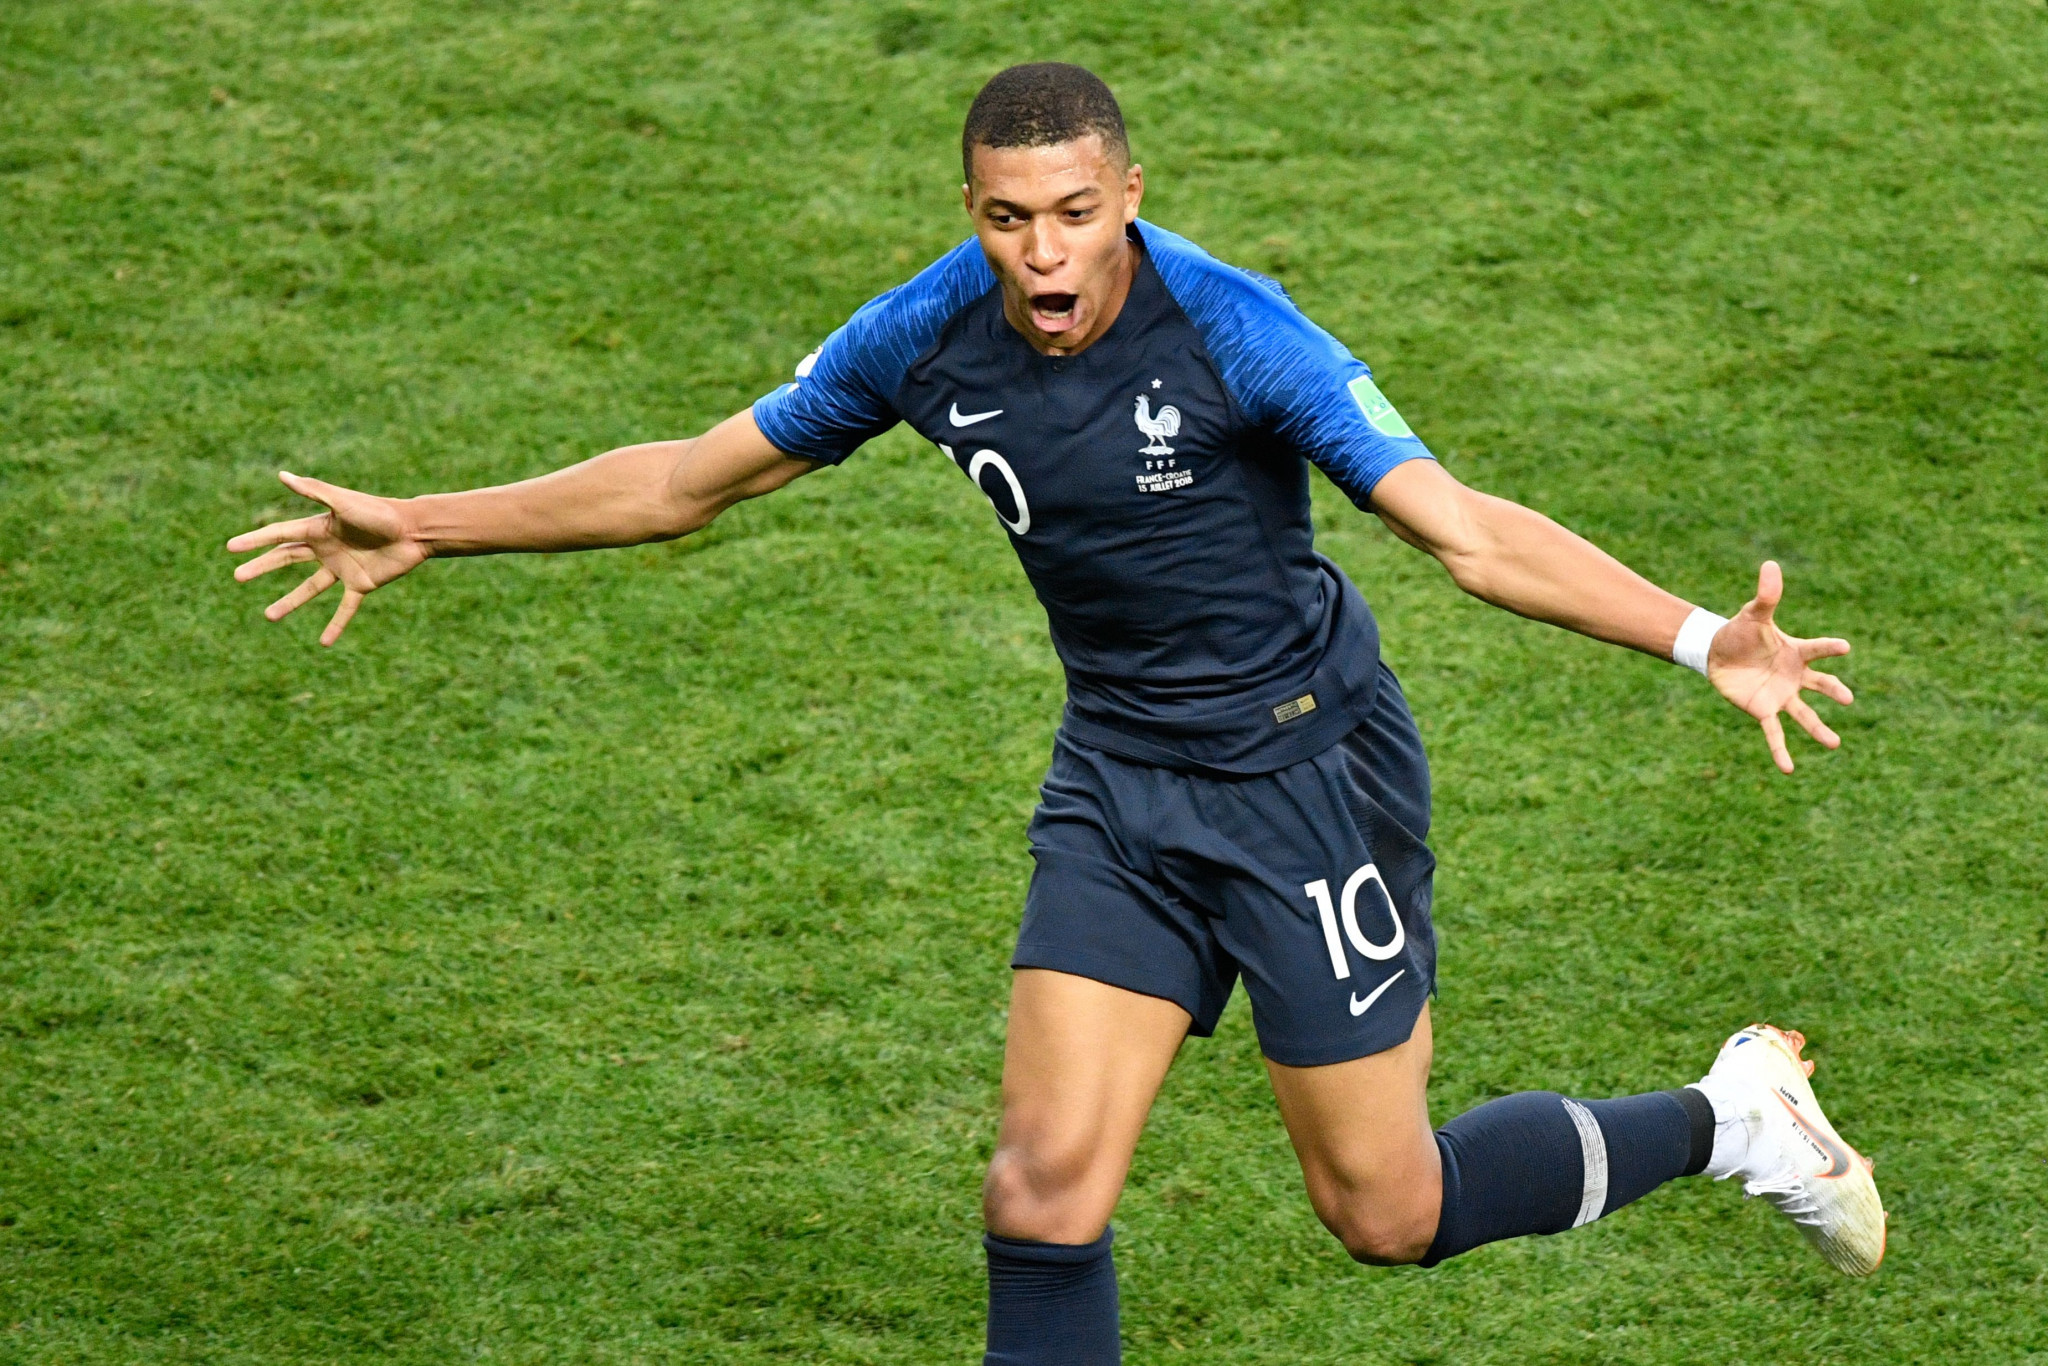 Kylian Mbappé, who played a key role in France winning the 2018 FIFA World Cup, is one of six nominees for sportsman of the year ©Getty Images